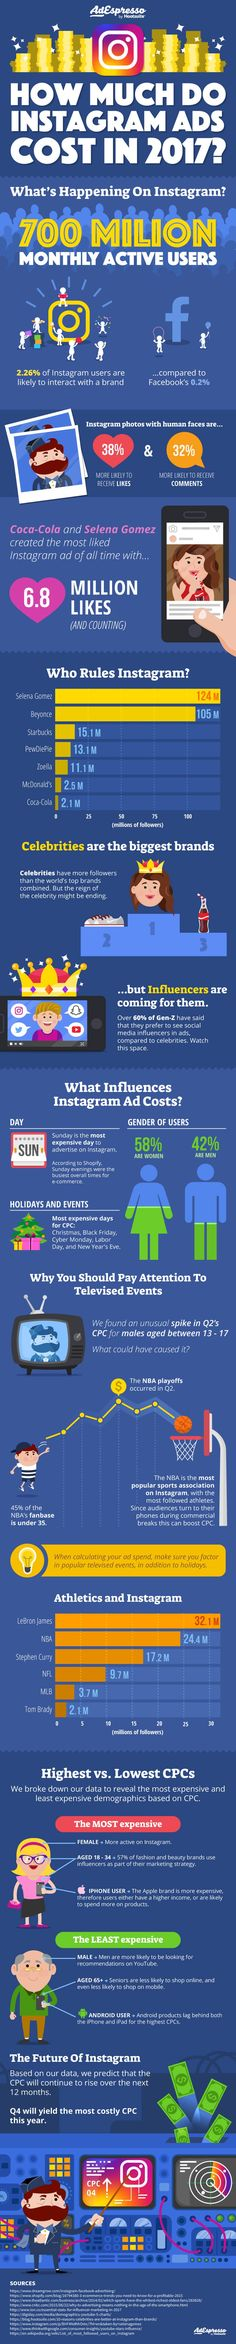 How Much Do Instagram Ads Cost in 2017 #infographic #SocialMedia #Instagram #Advertising